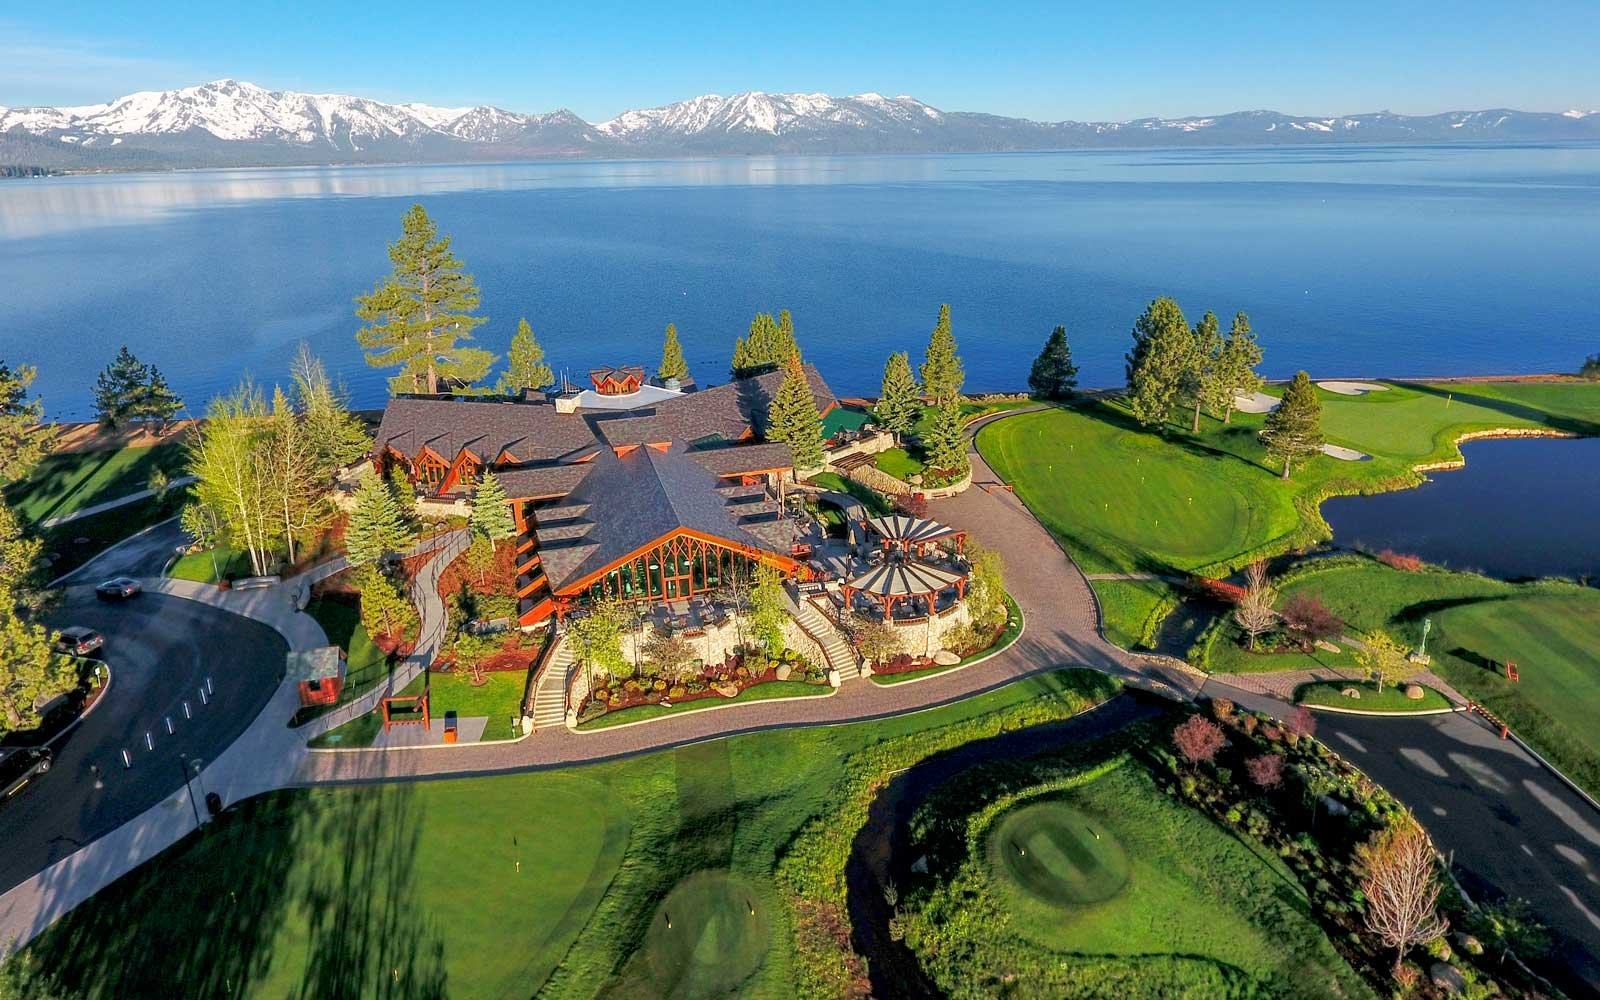 The Top 10 Resort Hotels in the American West